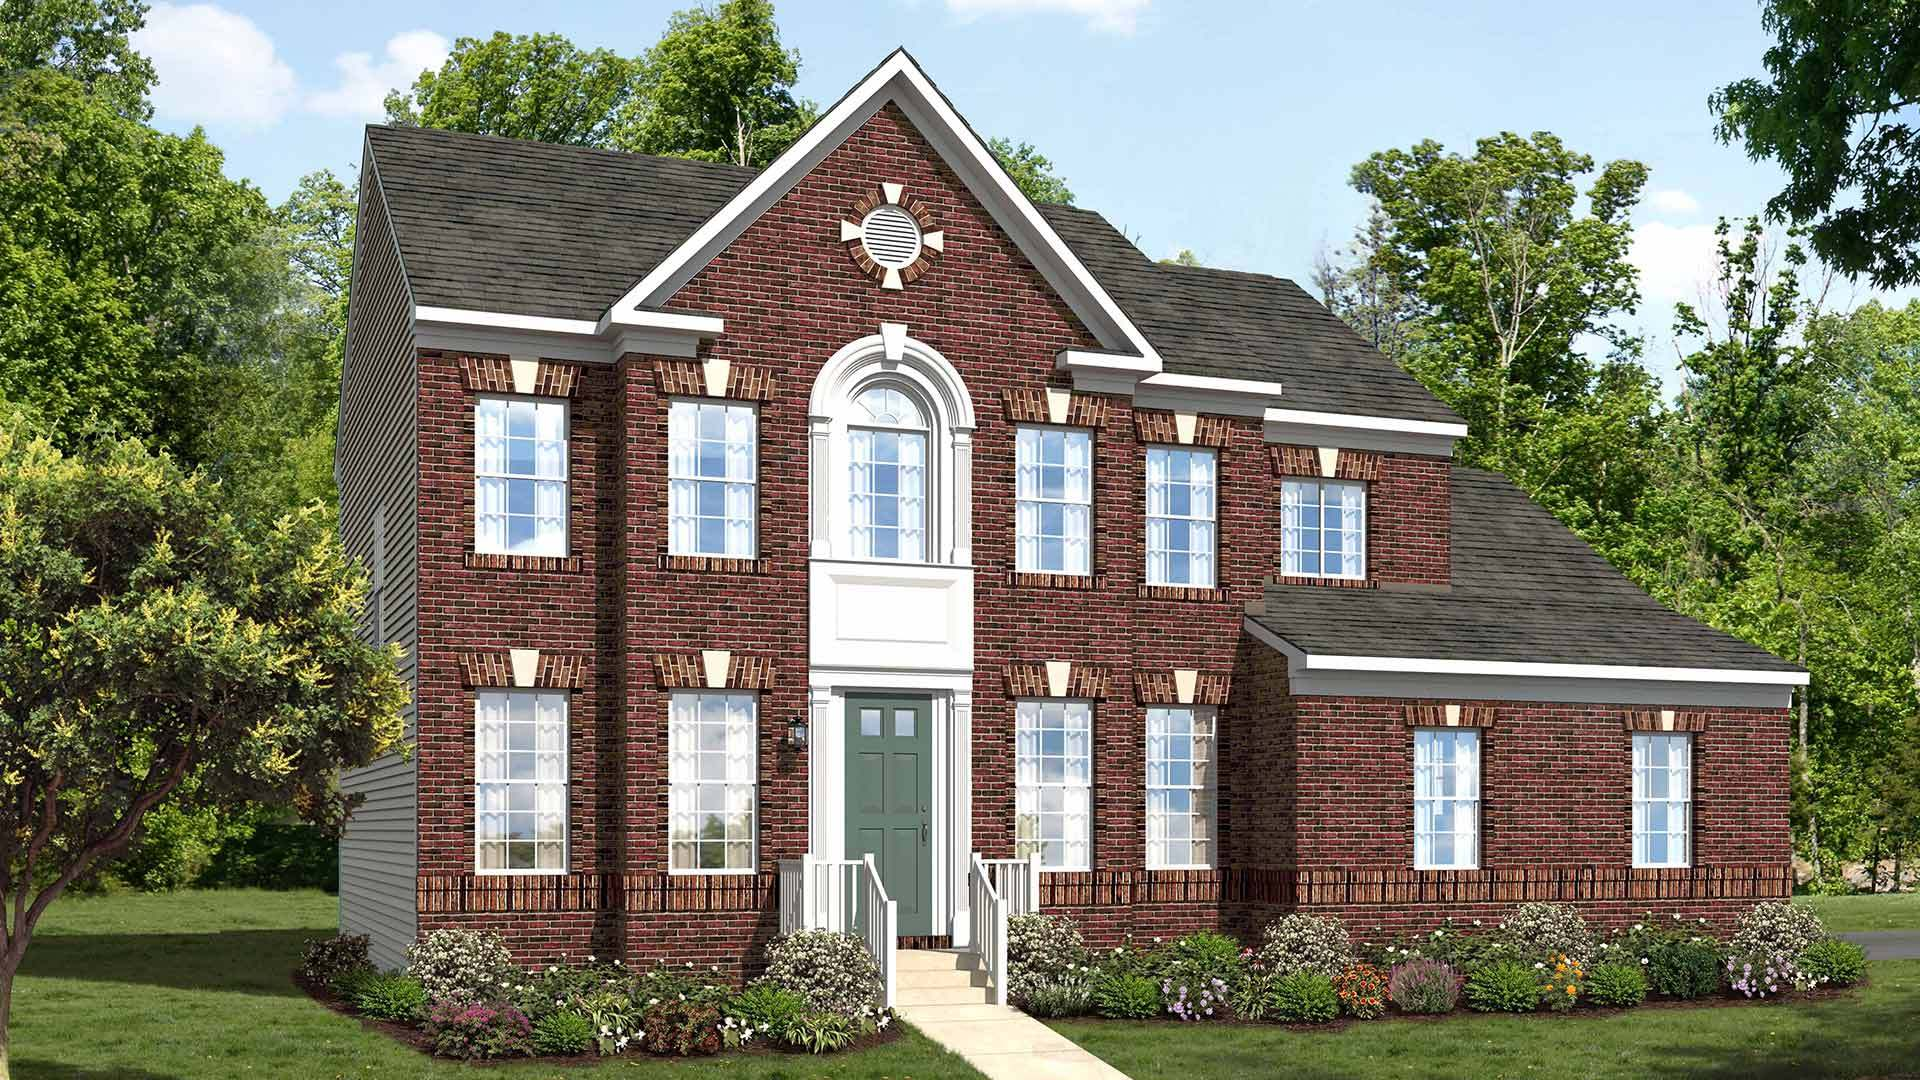 Chatham plan upper marlboro maryland 20772 chatham plan at marlboro riding and pointe by for Martin home exteriors jacksonville fl